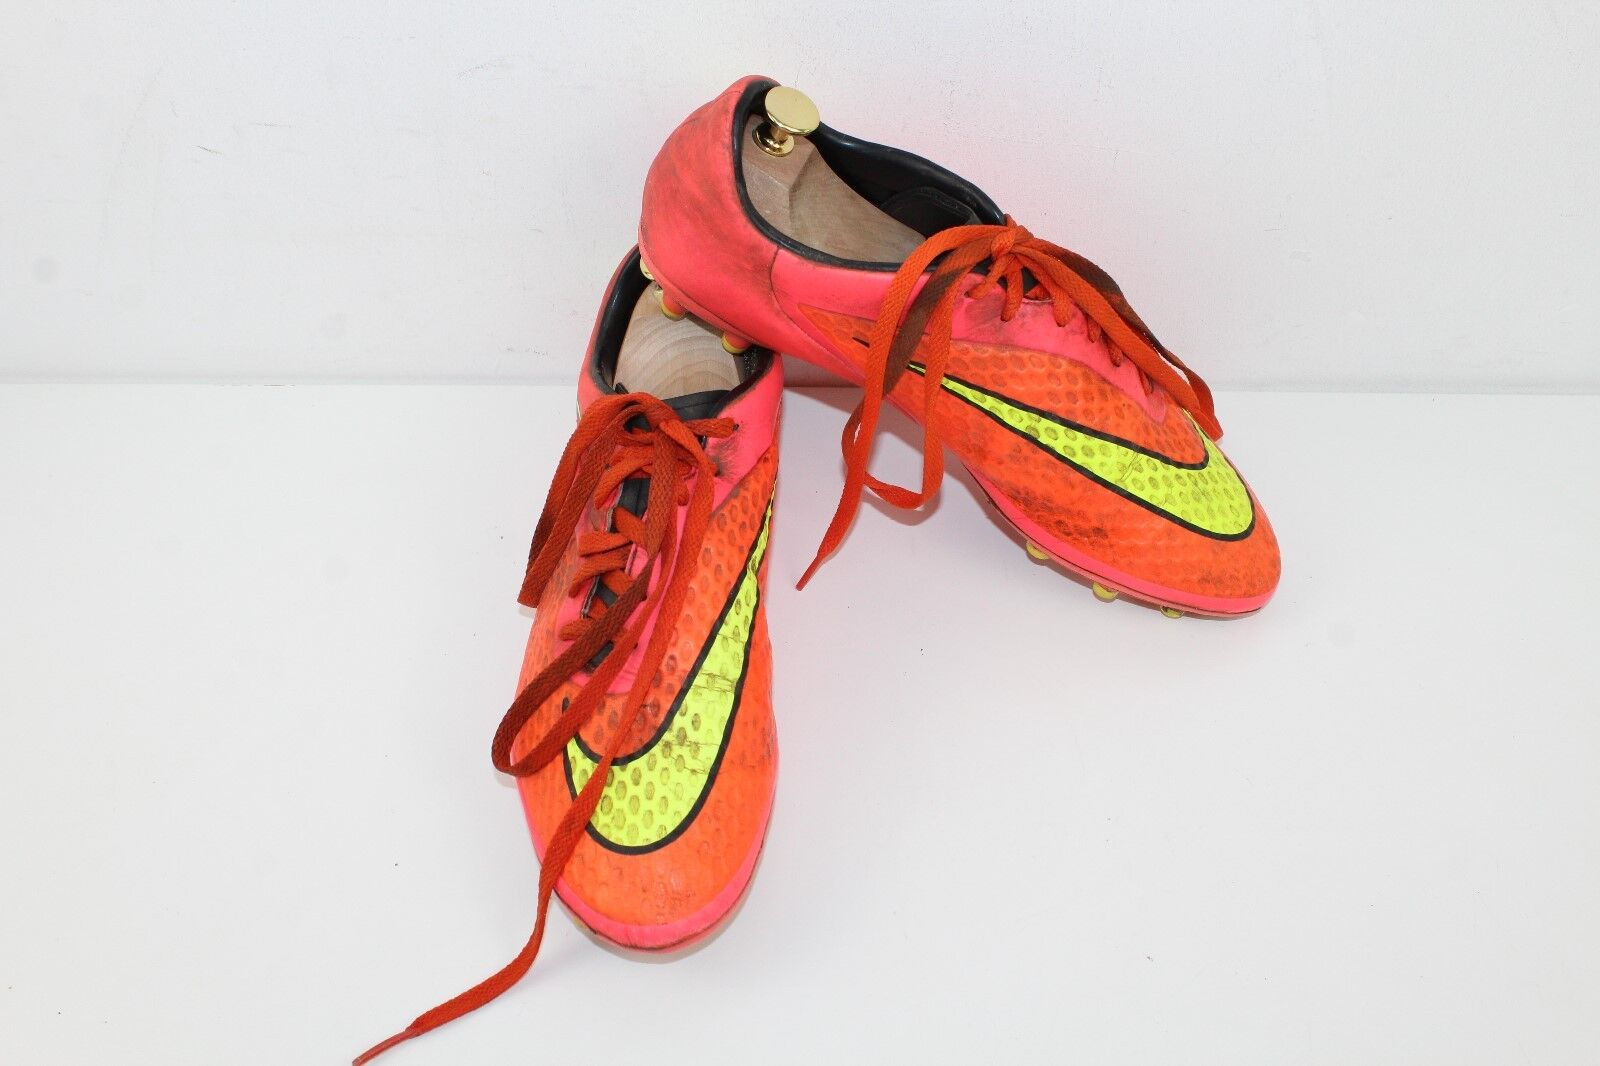 d140f74f418 Mens Nike Hypervenom Football boots size Uk 11 Eu 46. CONDITION  DIRTY AND  MARKED Great item at an affordable price